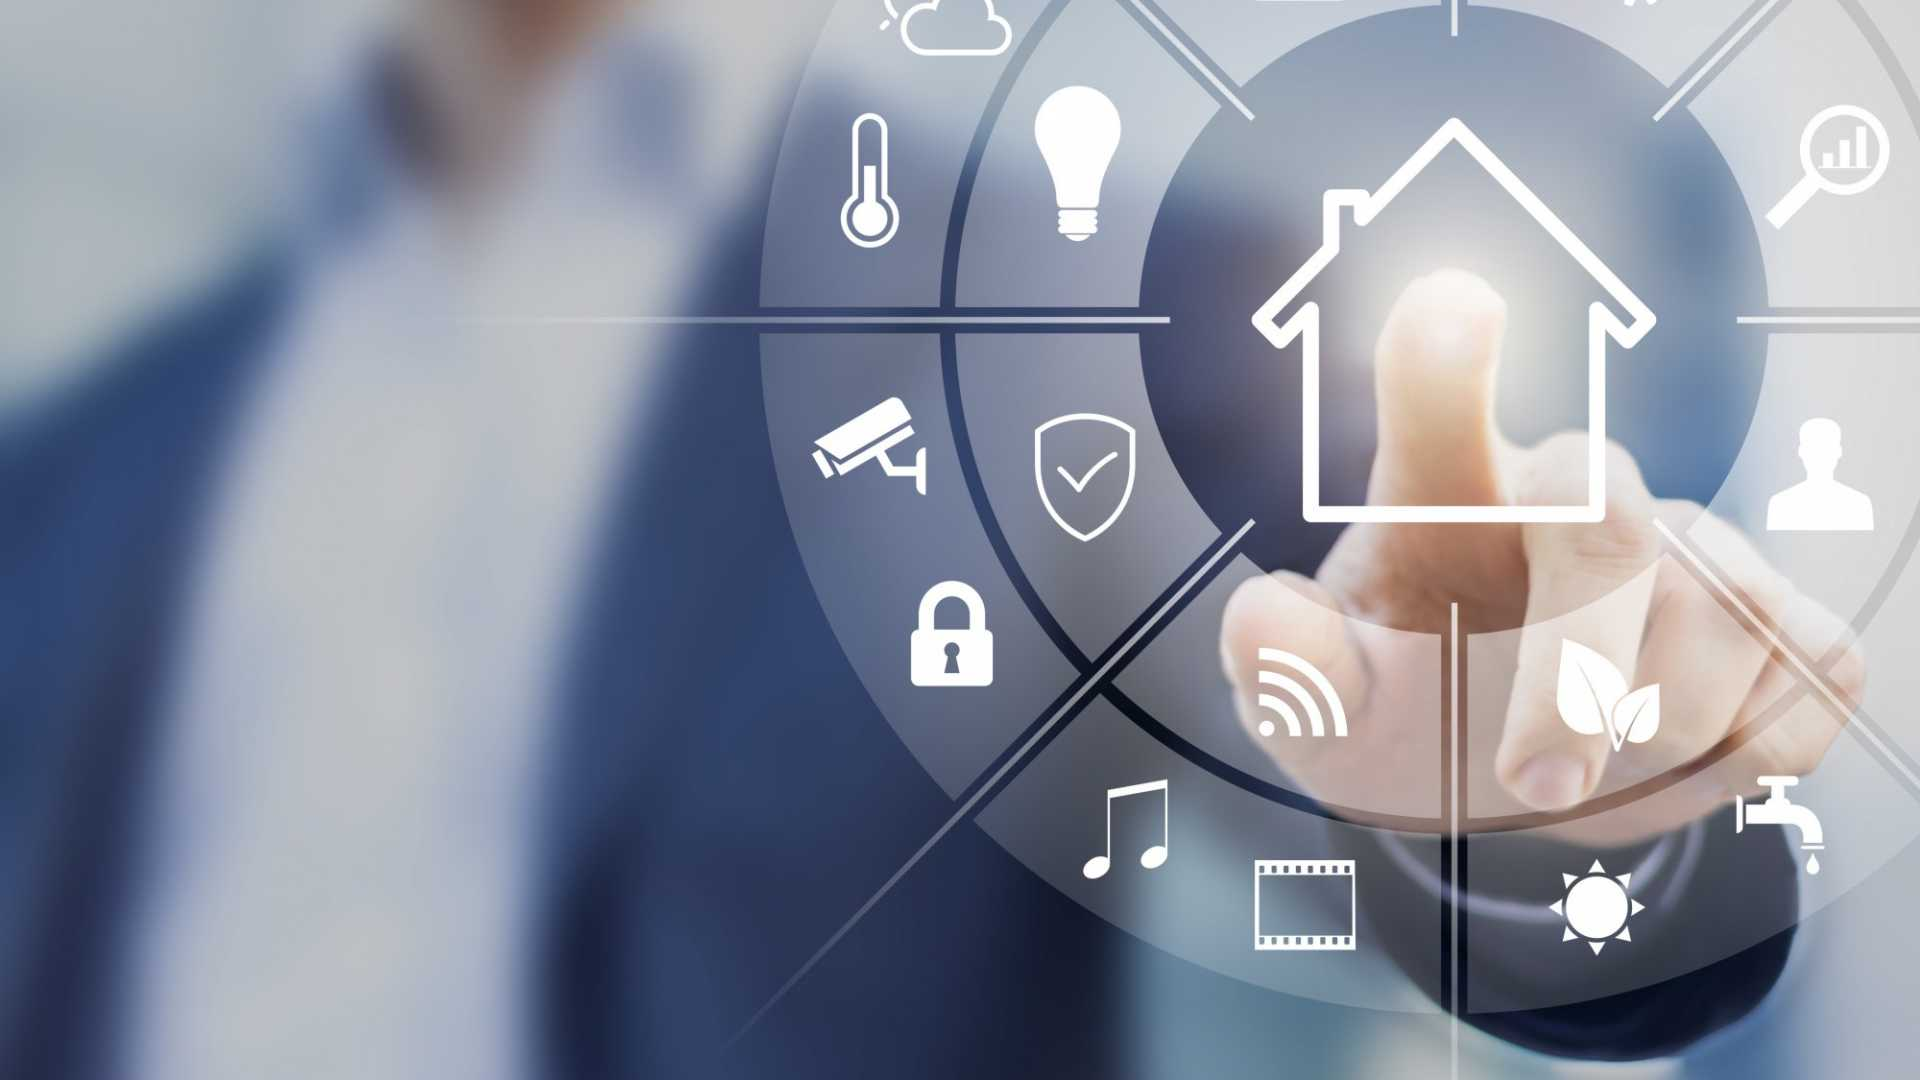 The Connected Home Security Industry is On Track to Hit $15.6 Billion by 2021